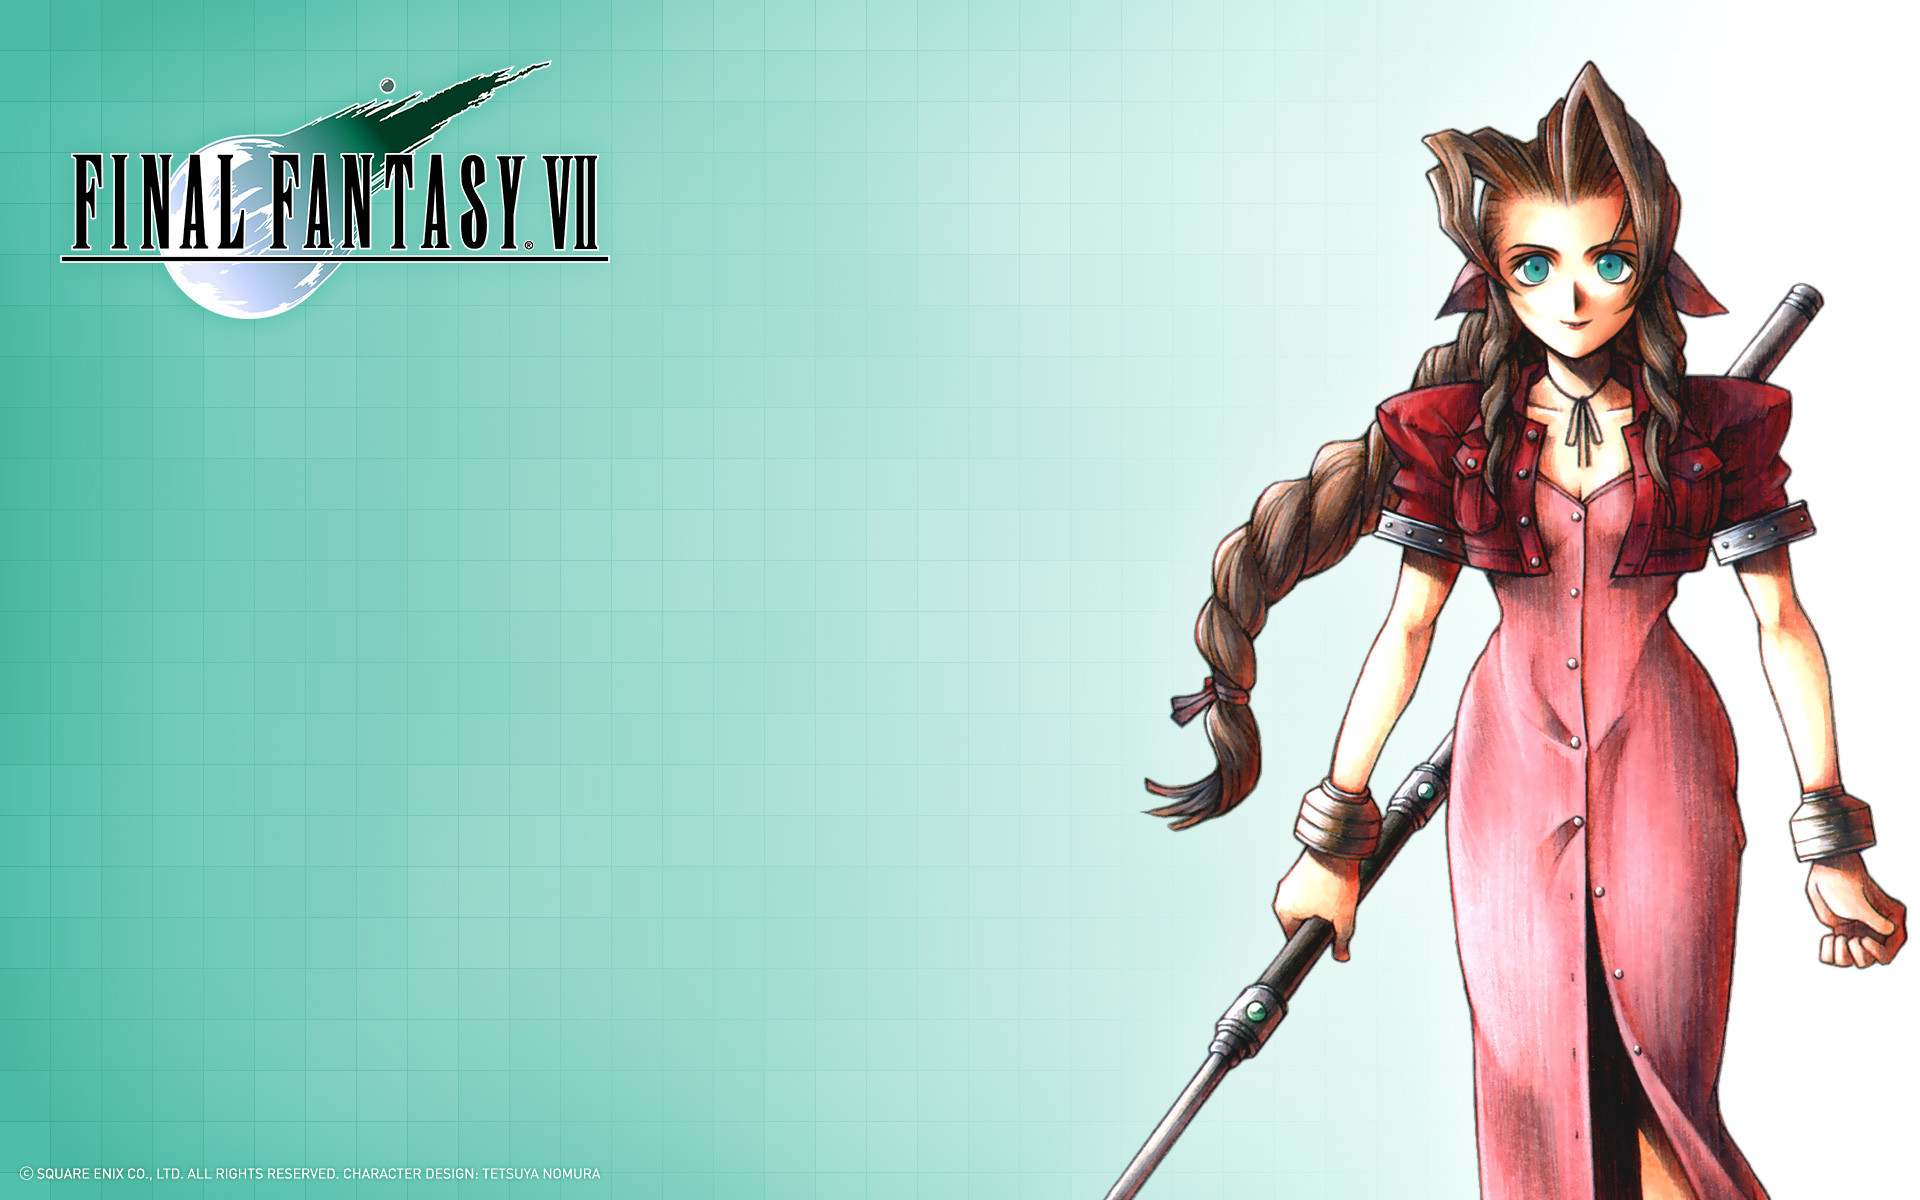 1920x1200 Wallpaper; Aeris; 1920 x 1200 ...